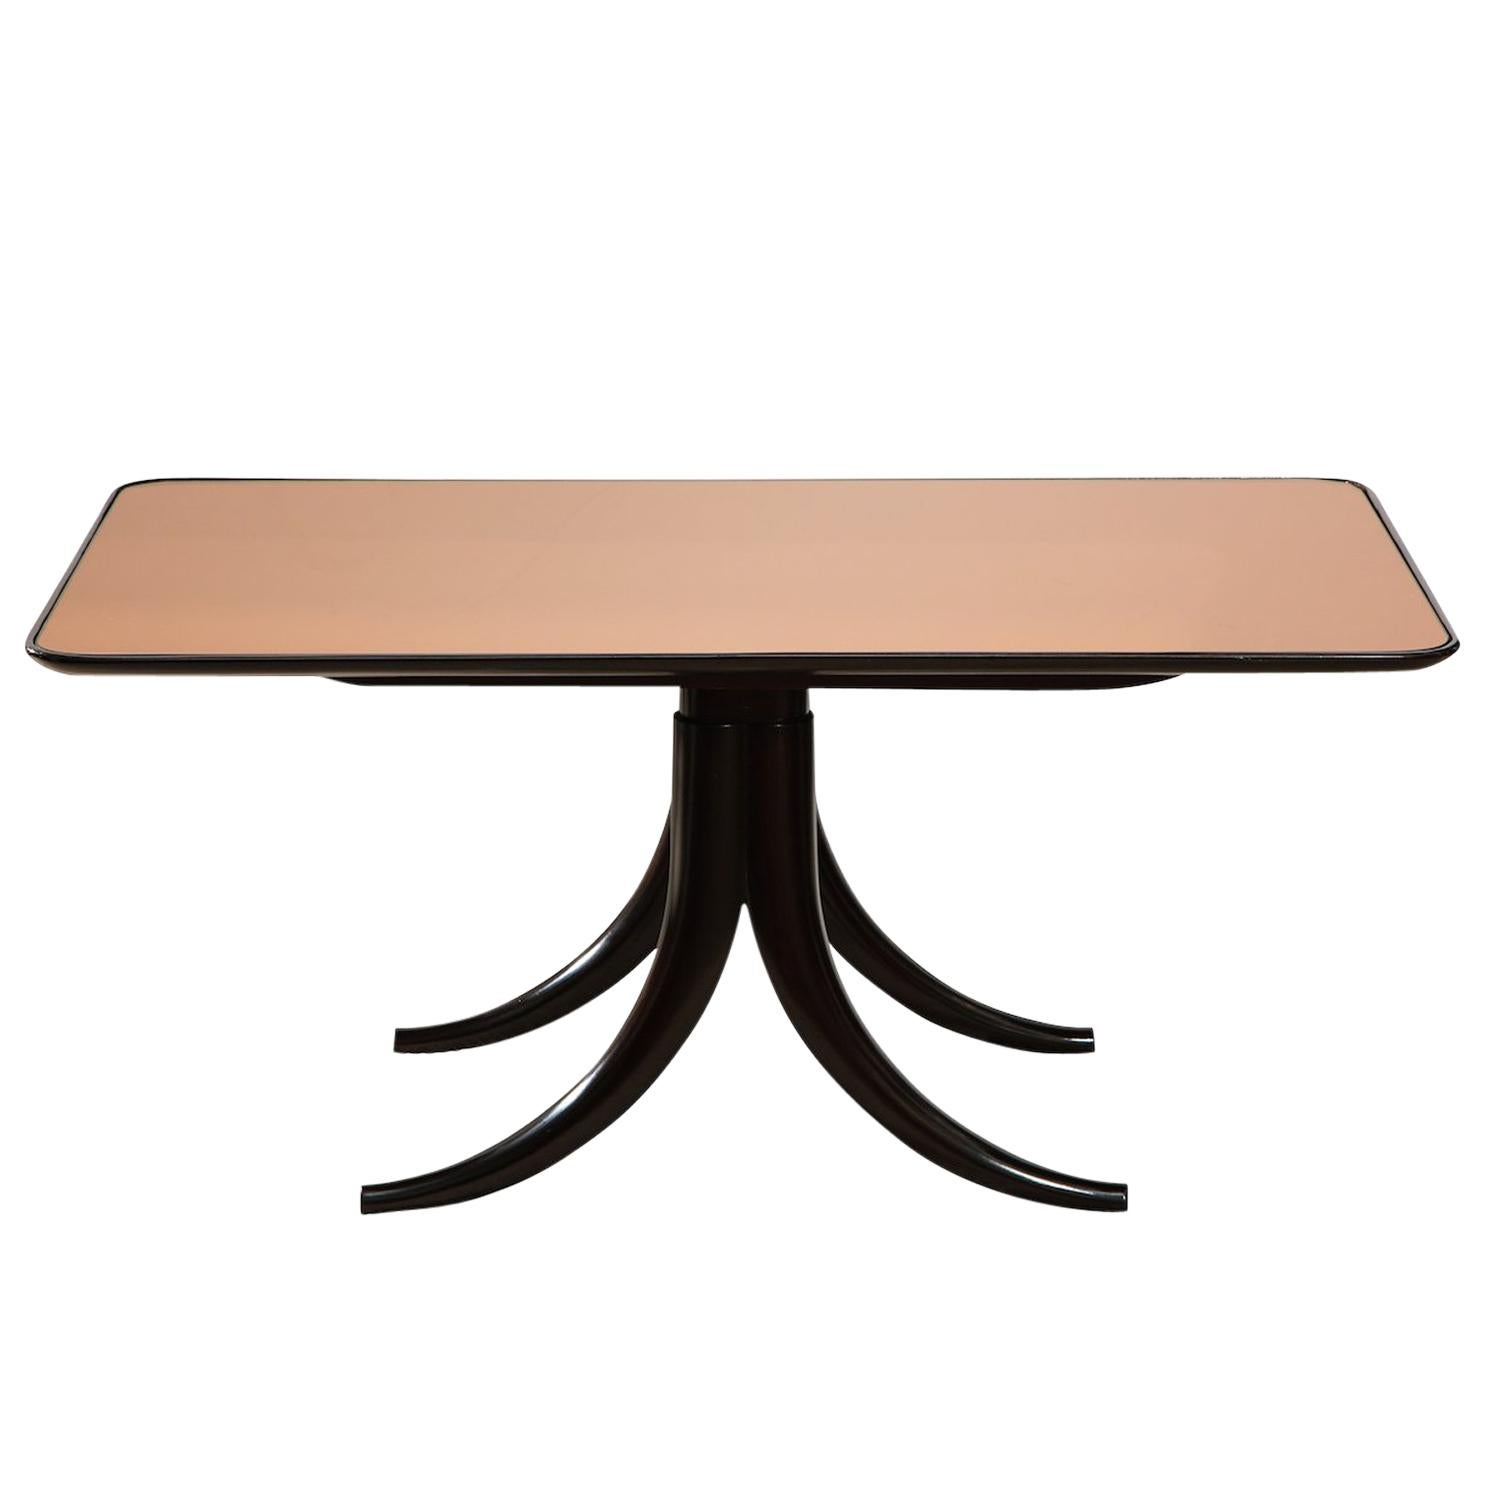 Rare Cocktail Table by Pietro Chiesa for Fontana Arte